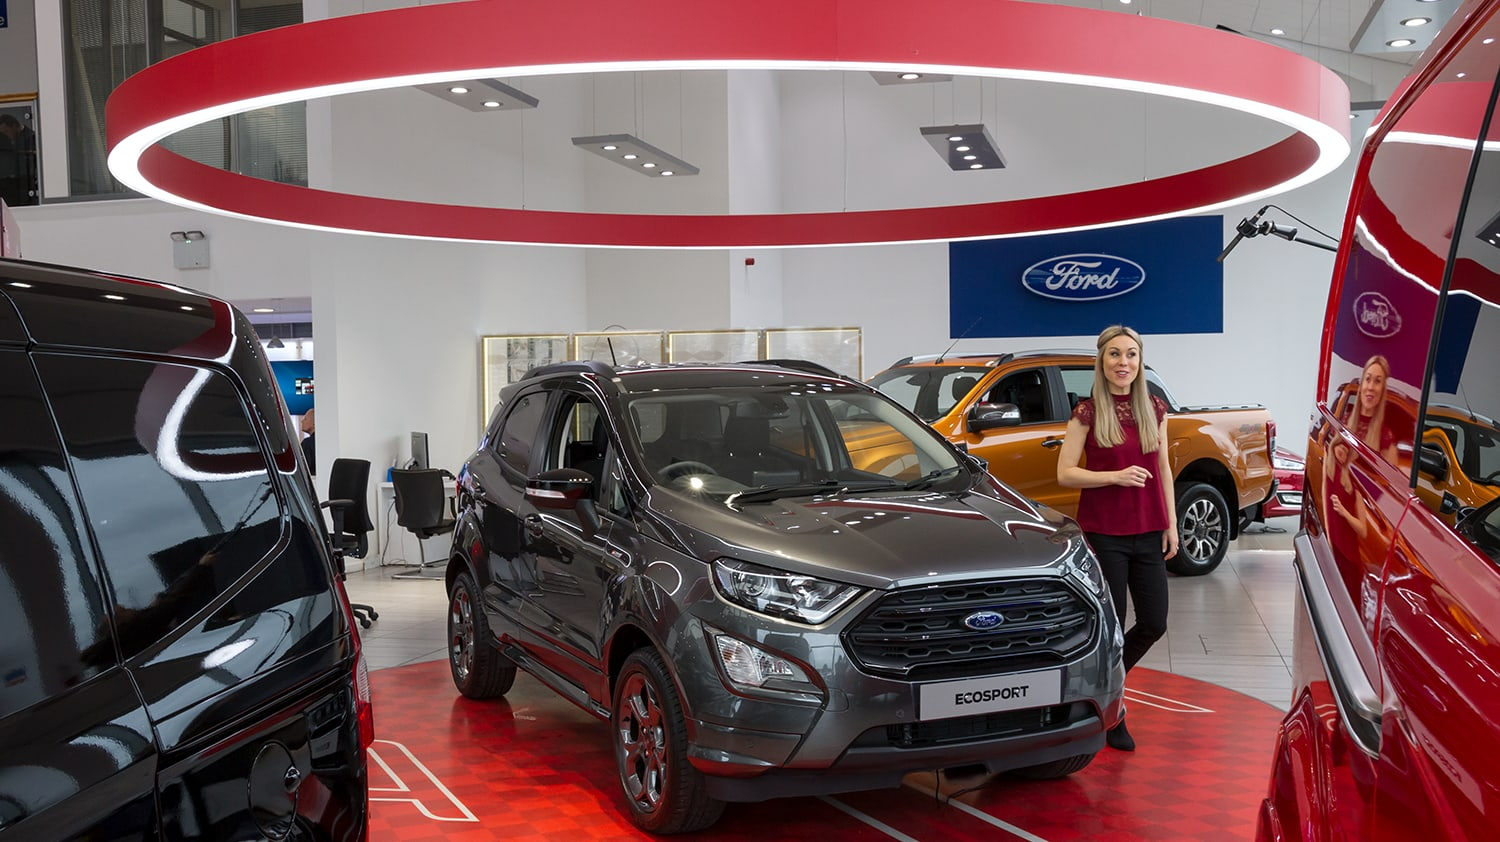 Smc Ford Slough >> New EcoSport Motability Offers | Kent & London | SMC Ford